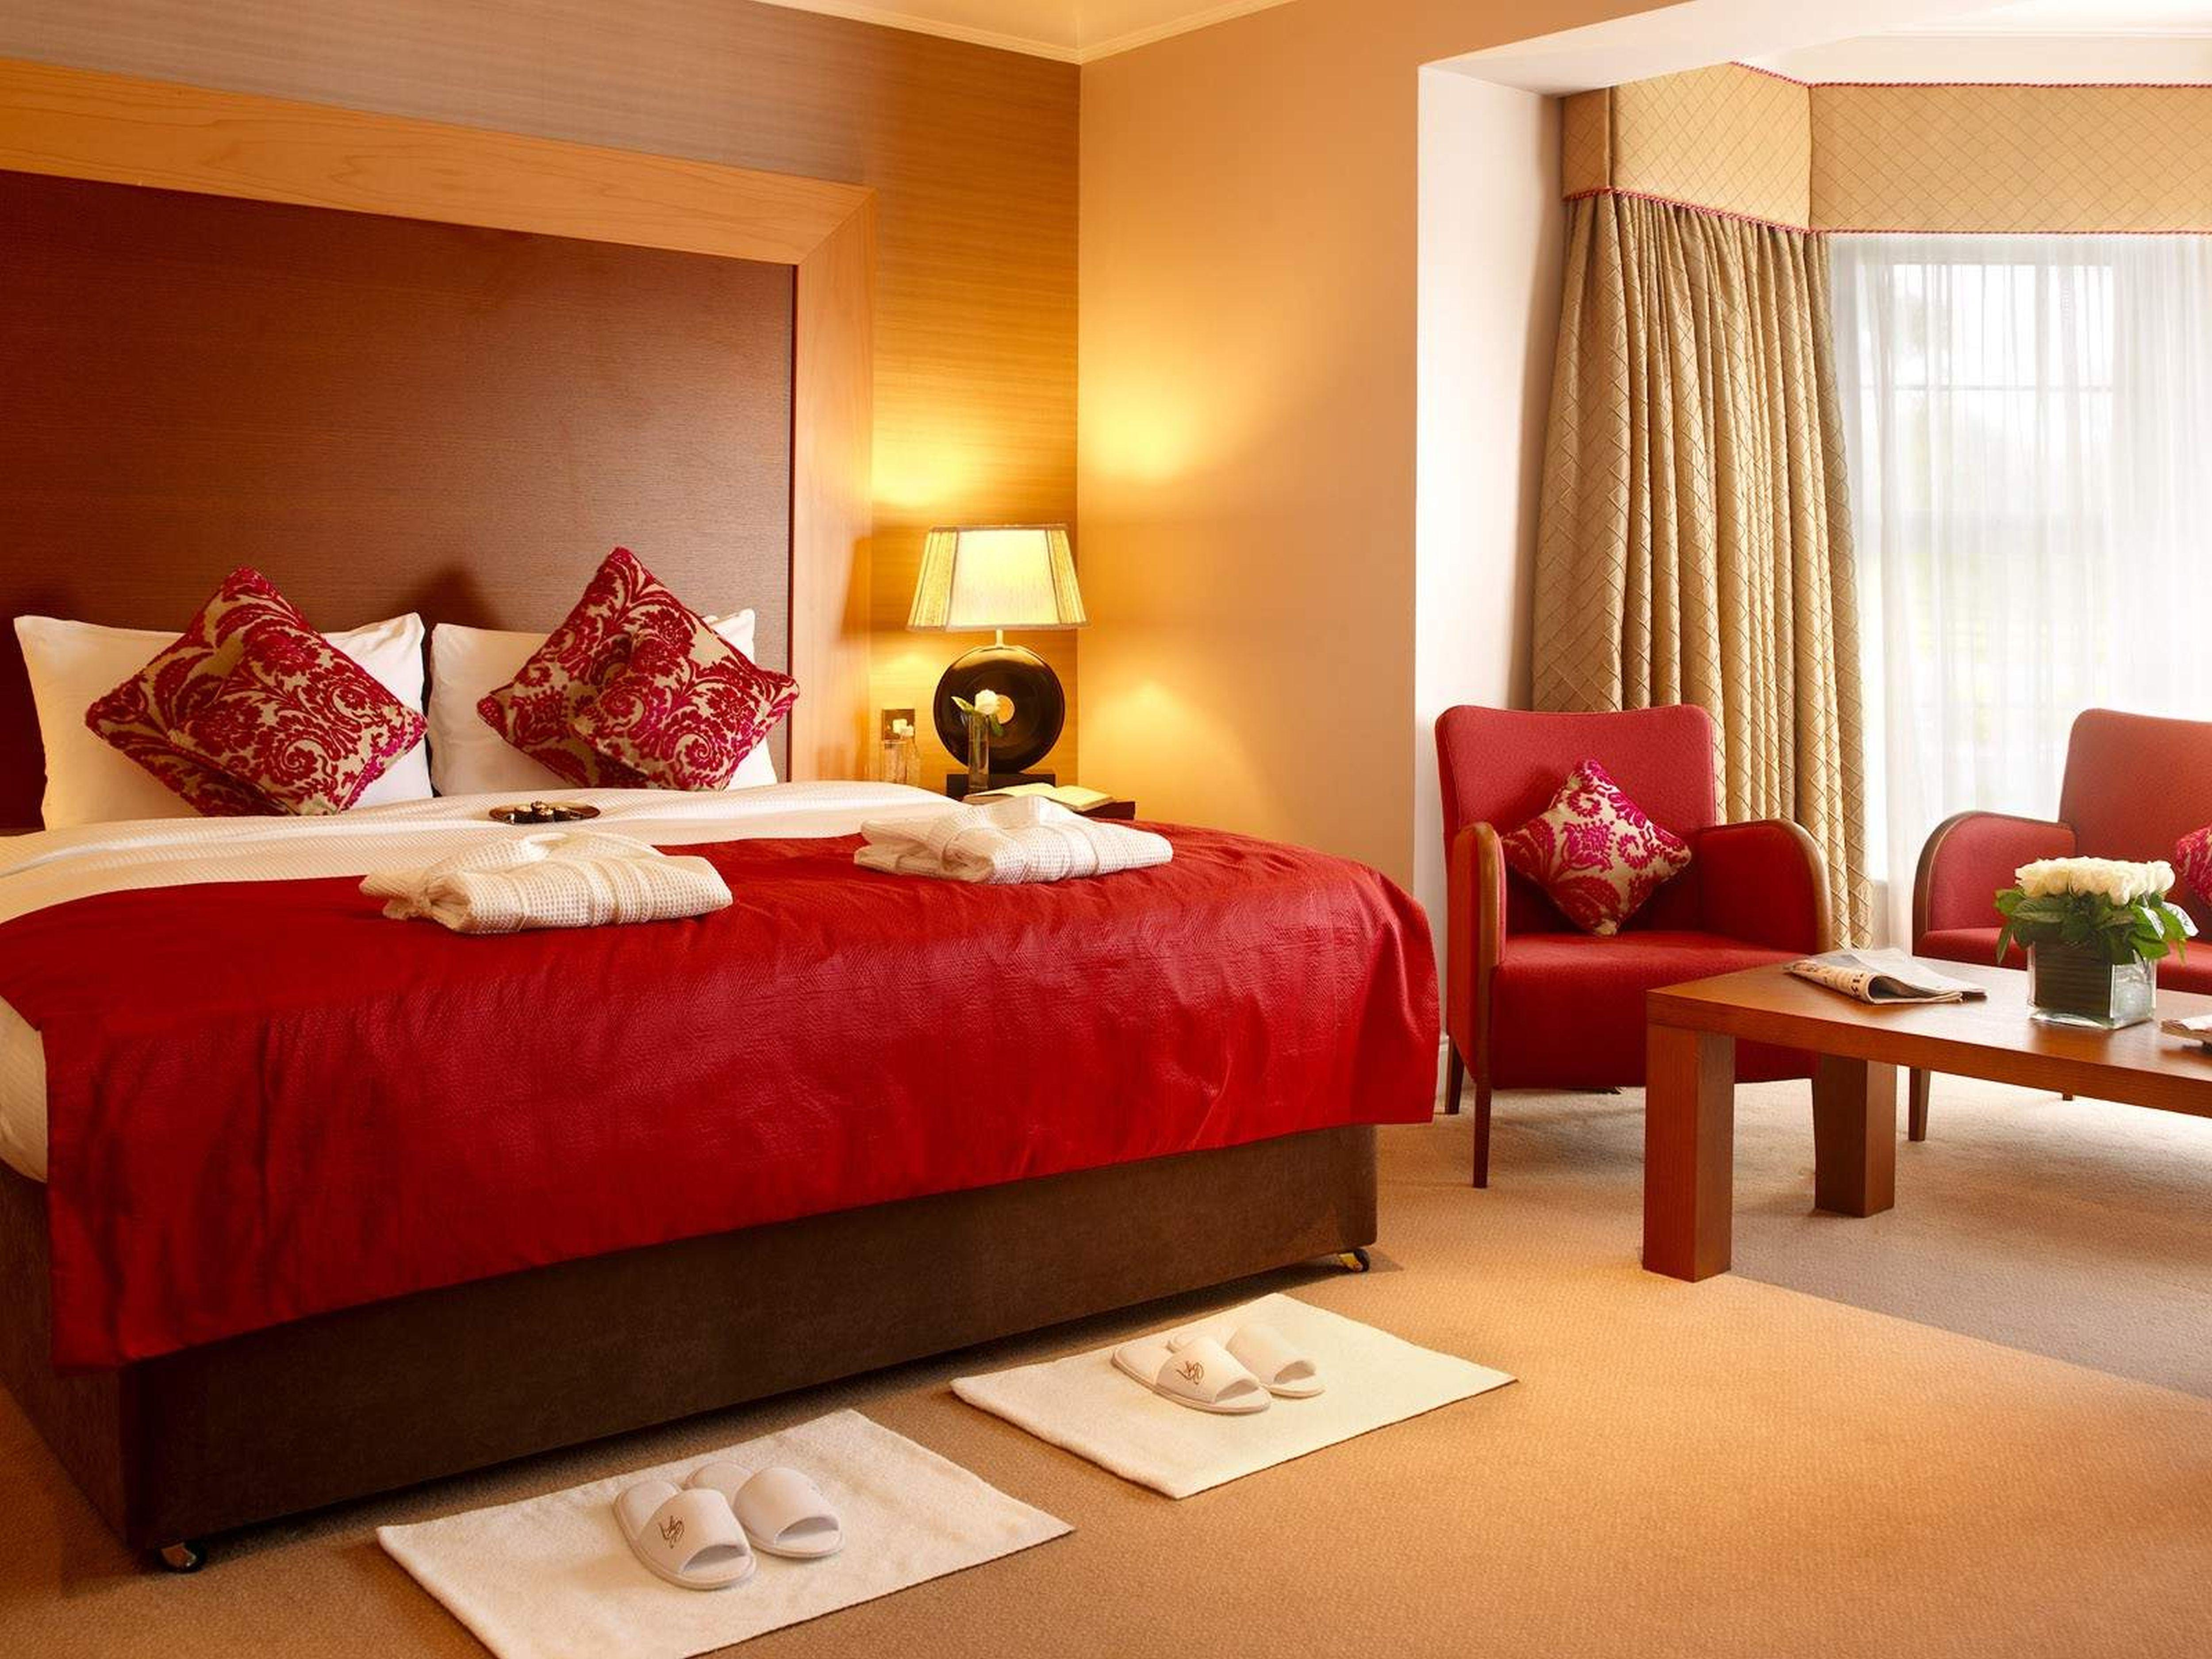 Astonishing Orange Bedroom Walls Of Fanciful Paint Colors Color Ideas Small Room